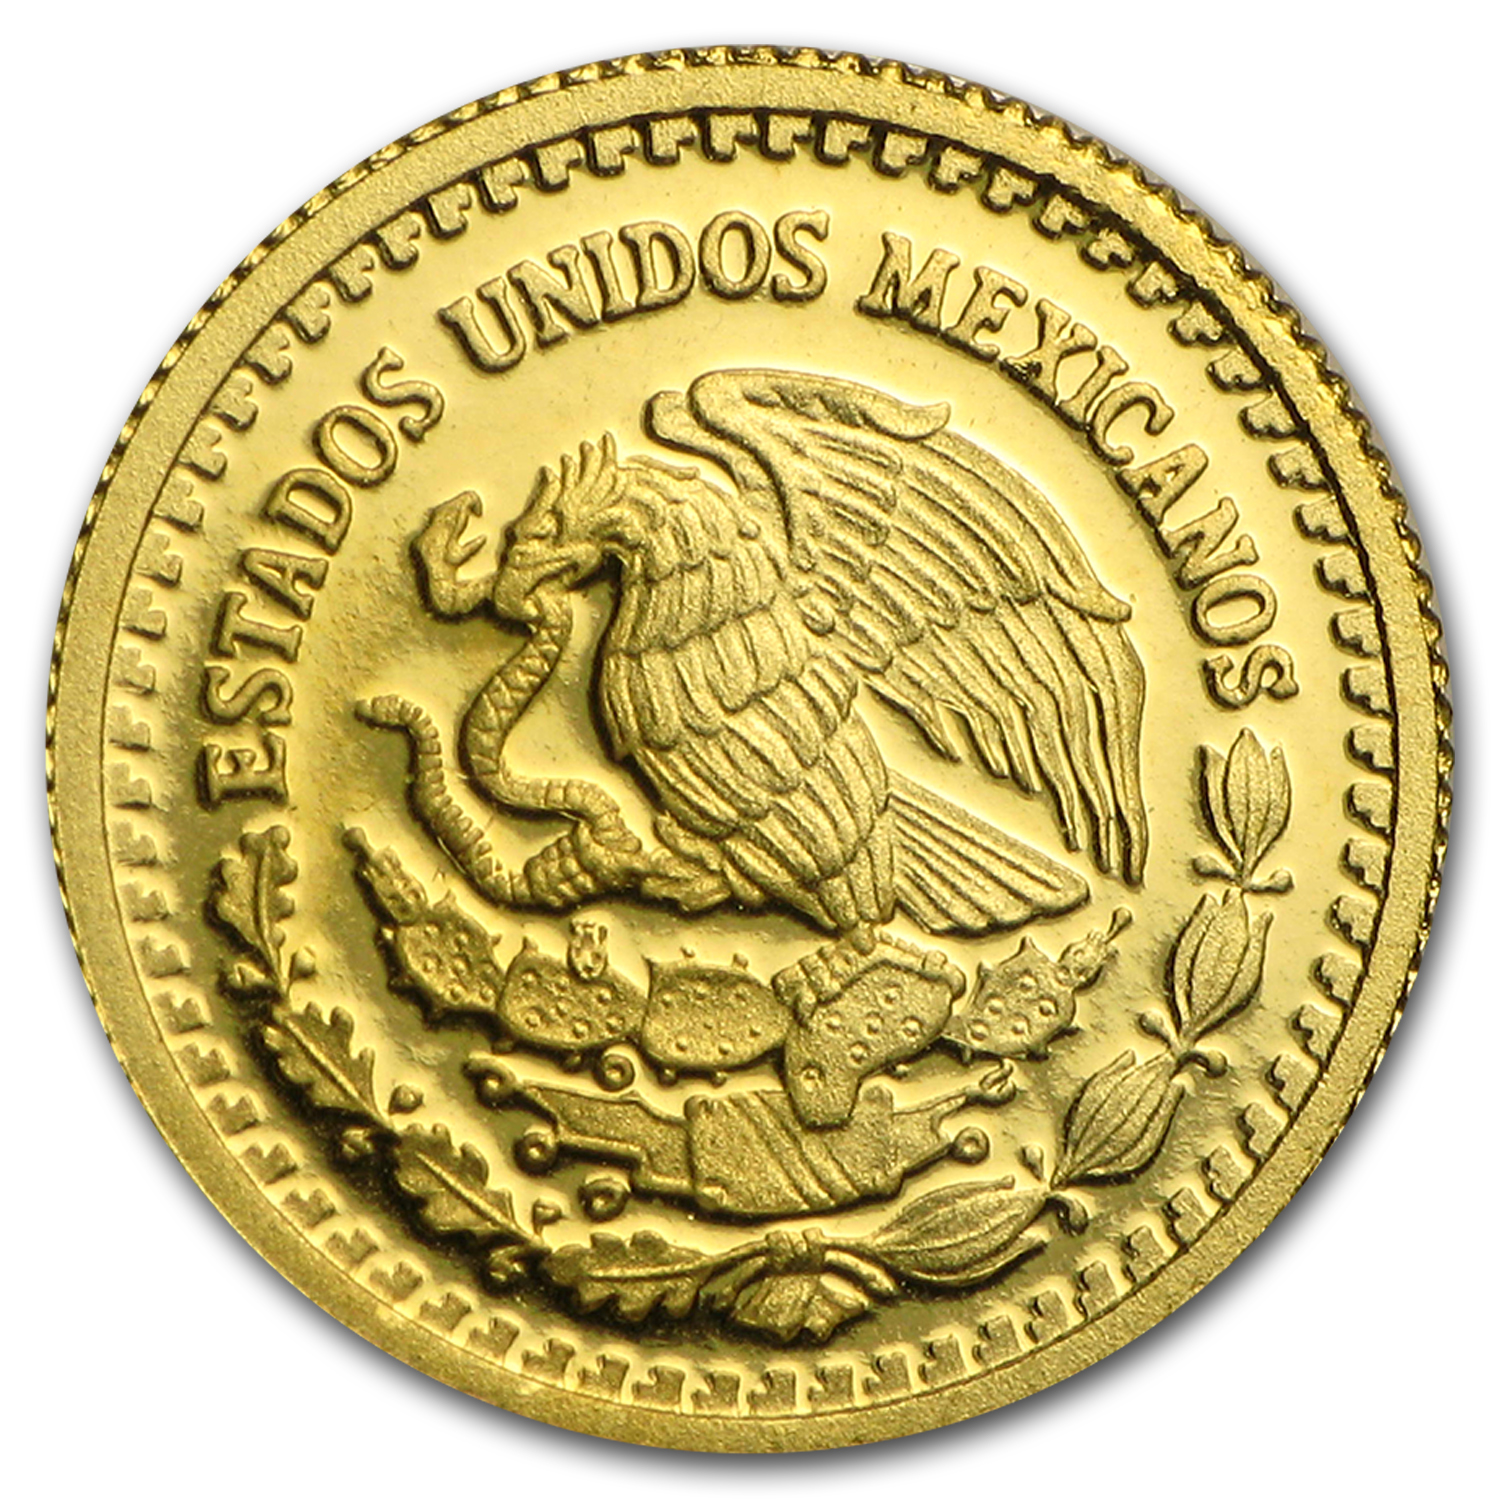 2015 Mexico 1/20 oz Proof Gold Libertad